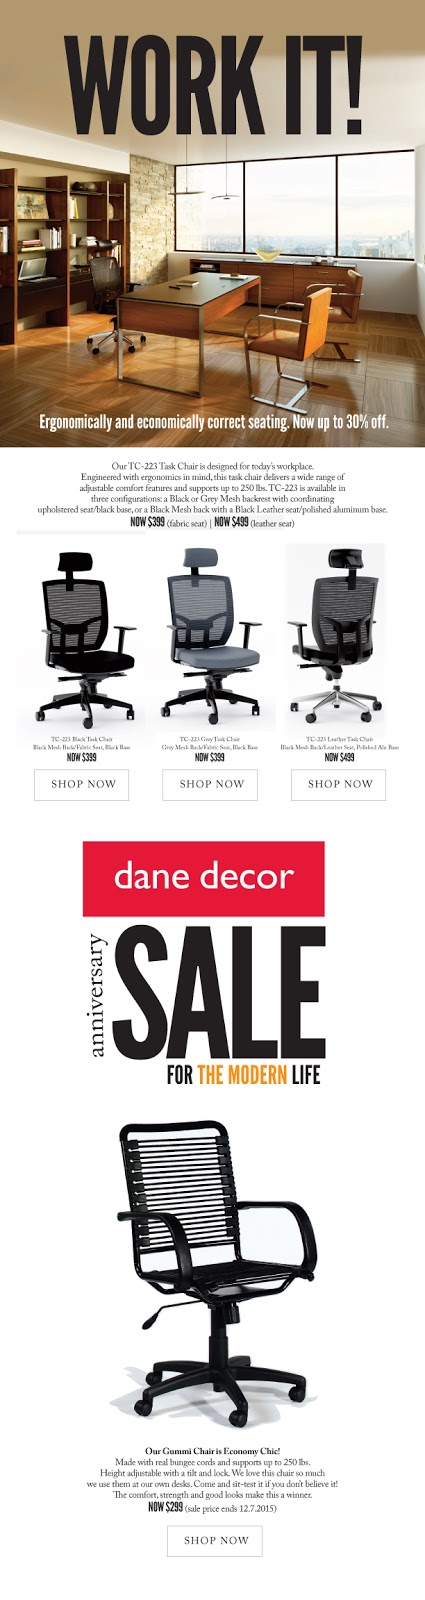 http://www.danedecor.com/product-category/workspace/desk-chairs/